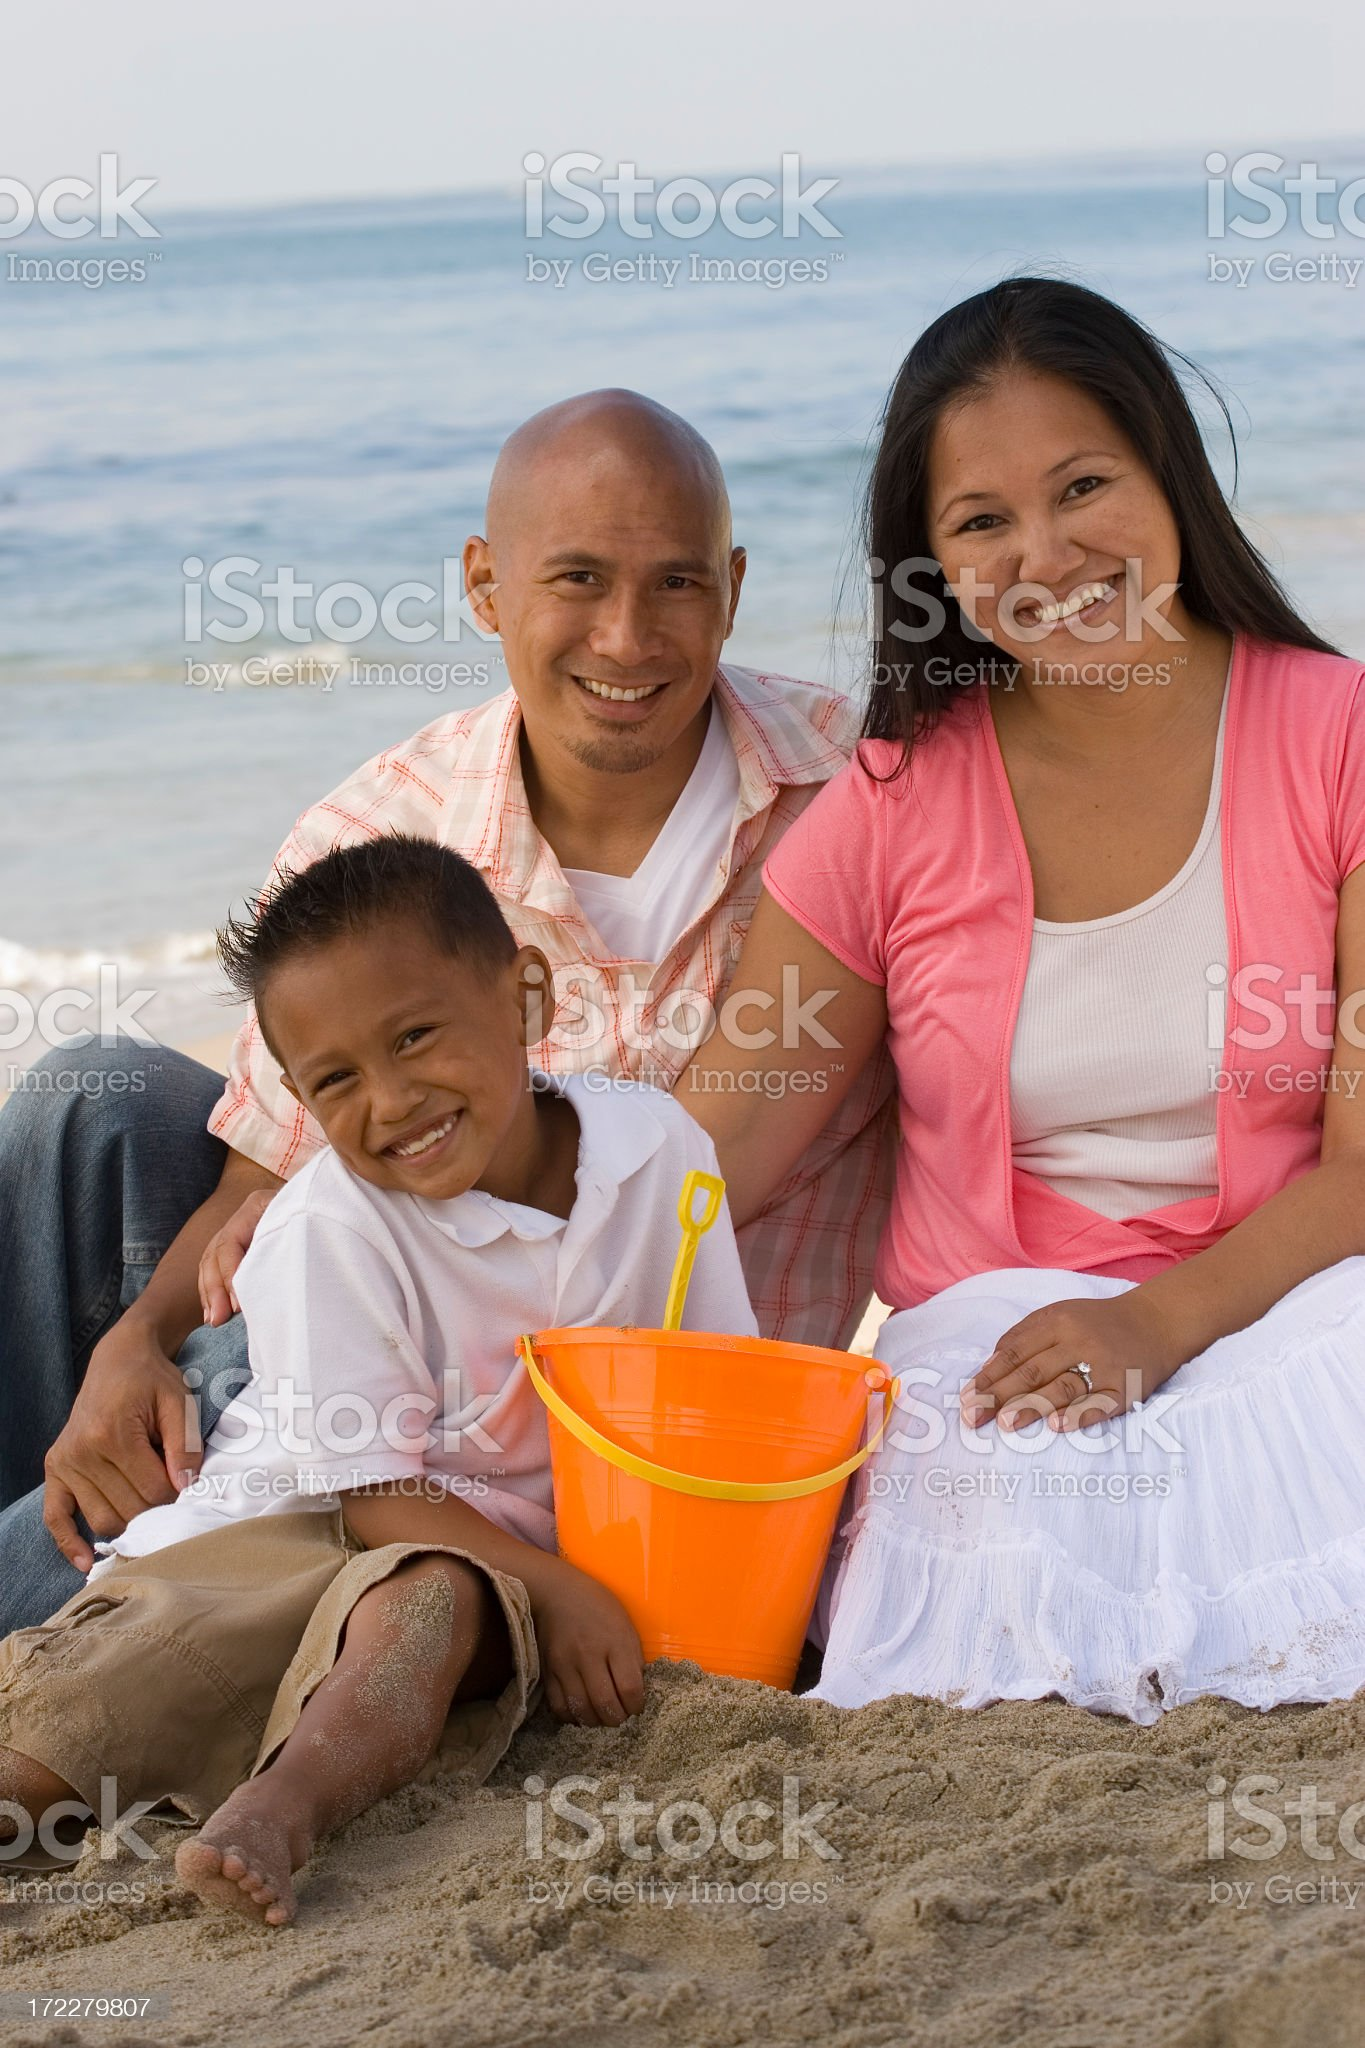 Family Fun royalty-free stock photo